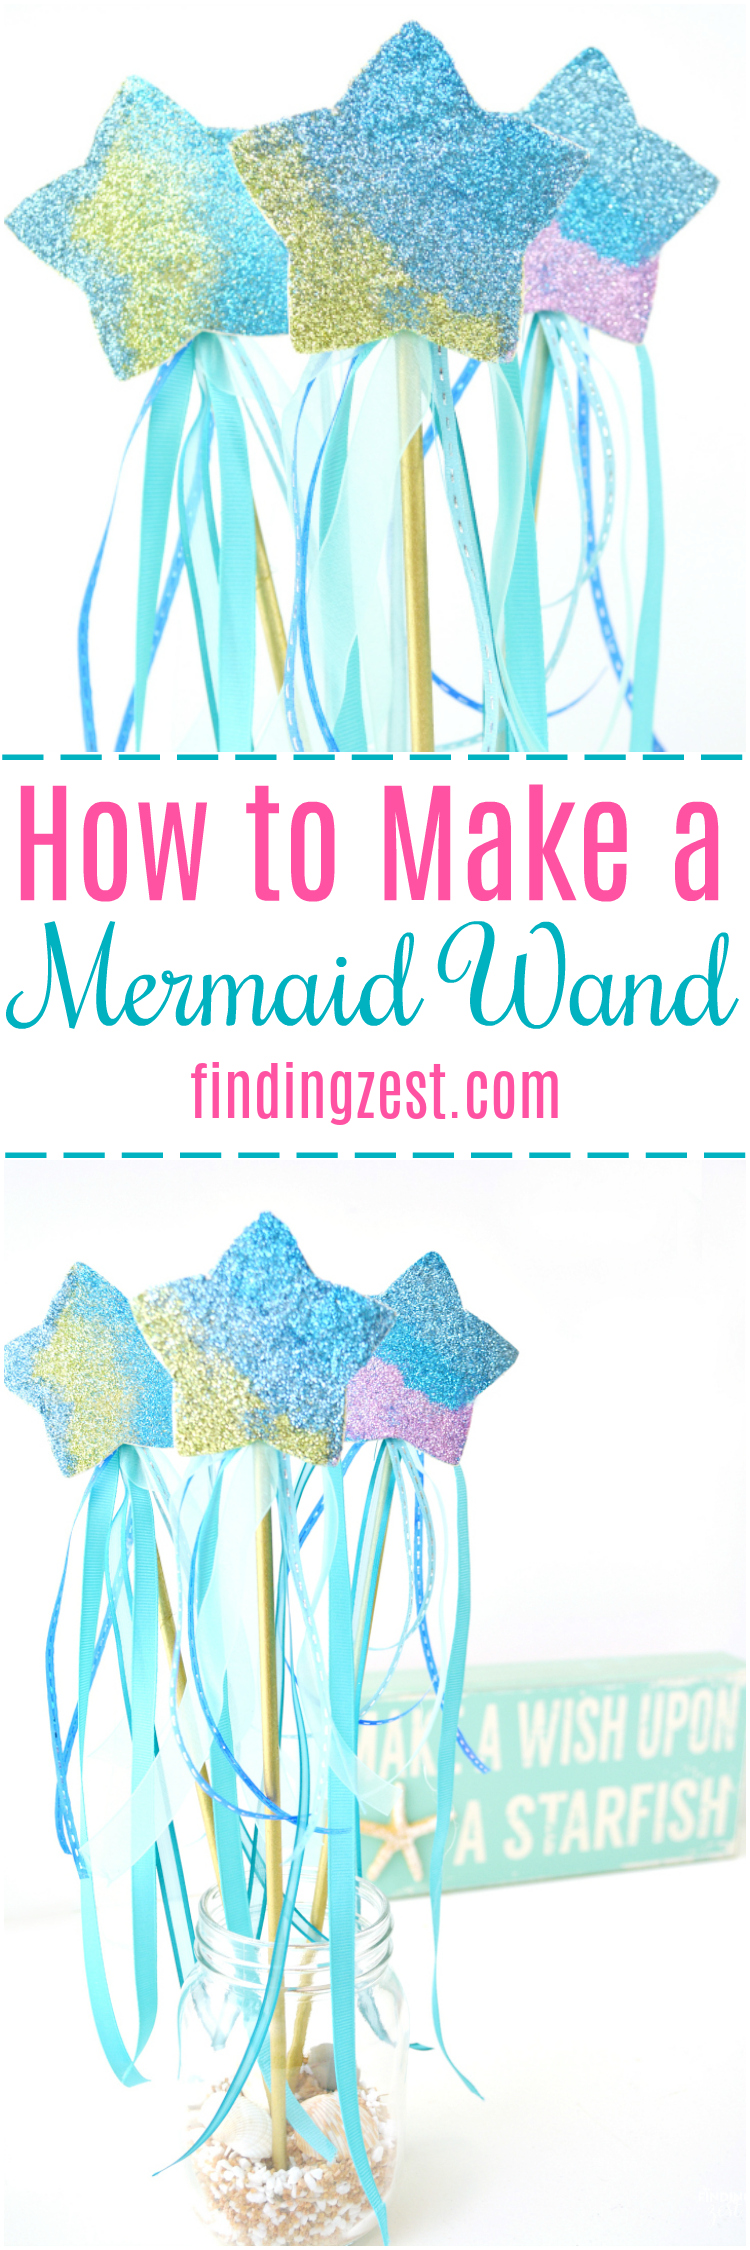 Ever wonder how to make a mermaid wand? These step by step instructions will show you how easy it is to create a magic wand for kids fit for any mermaid fan! Makes for great mermaid birthday party favors or craft activity. Colors can easily be switched out to create a star wand for any princess, fairy or unicorn party.